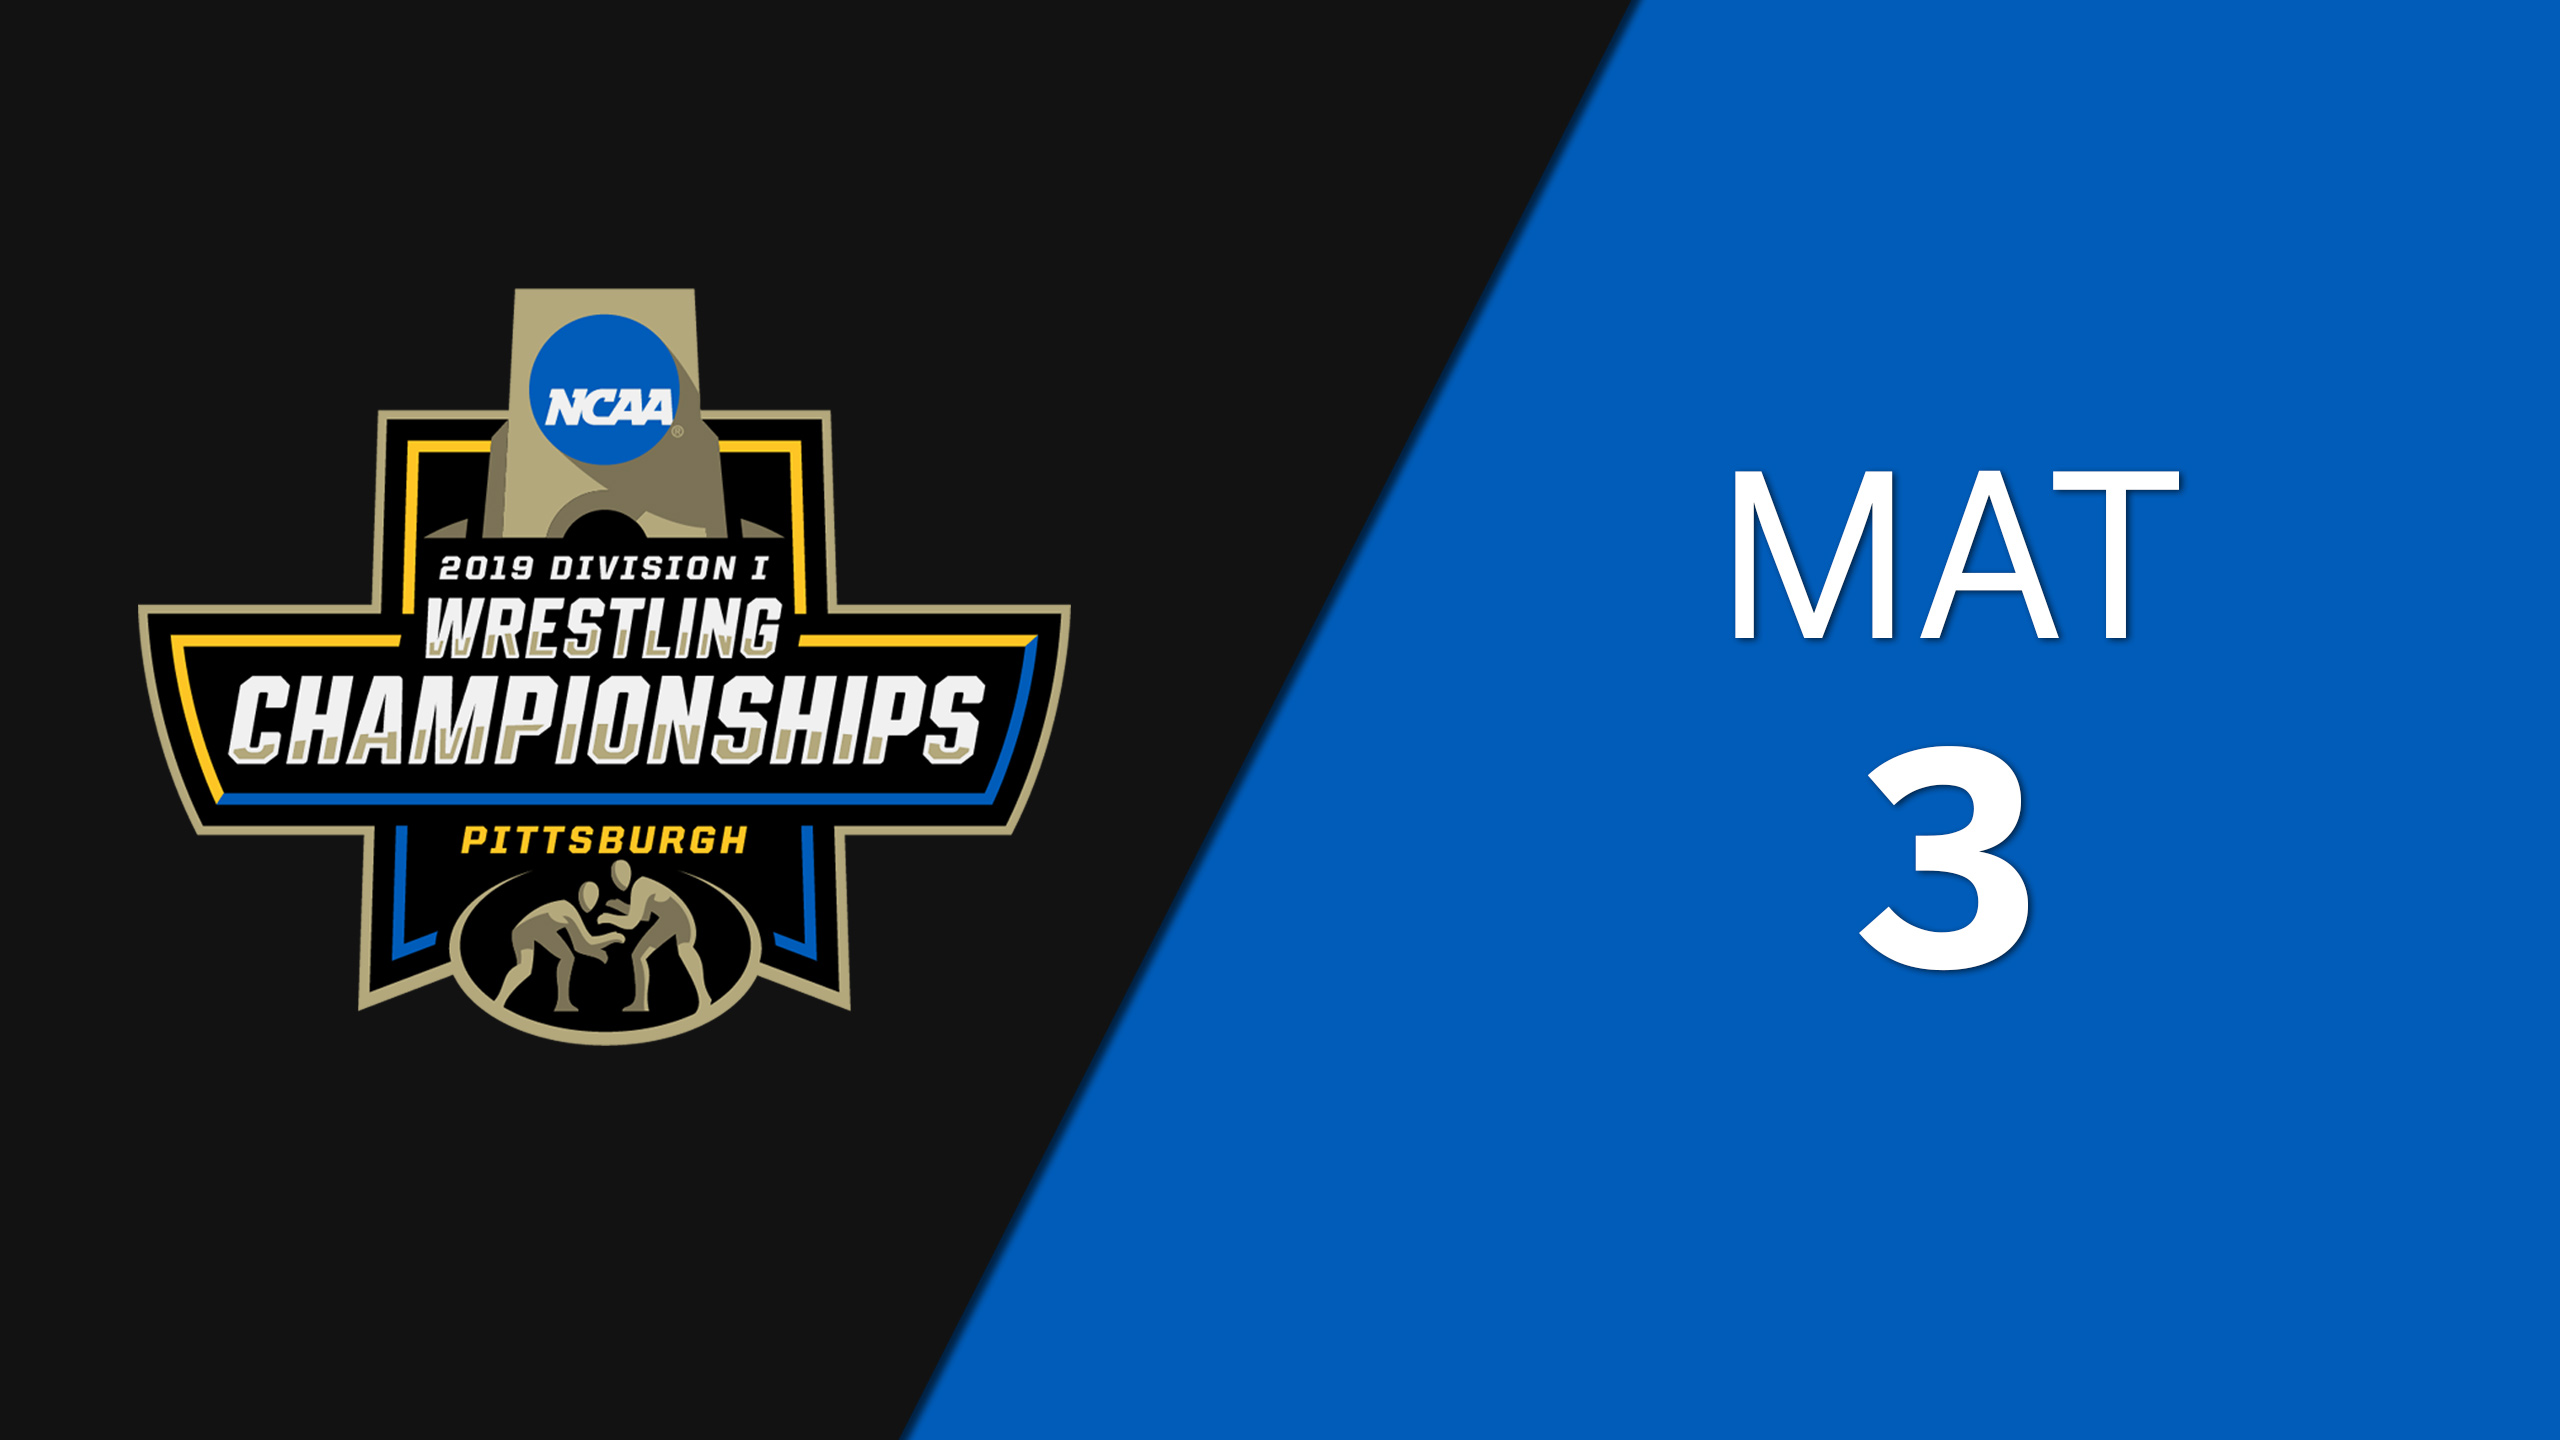 NCAA Wrestling Championship (Mat 3, Second Round)